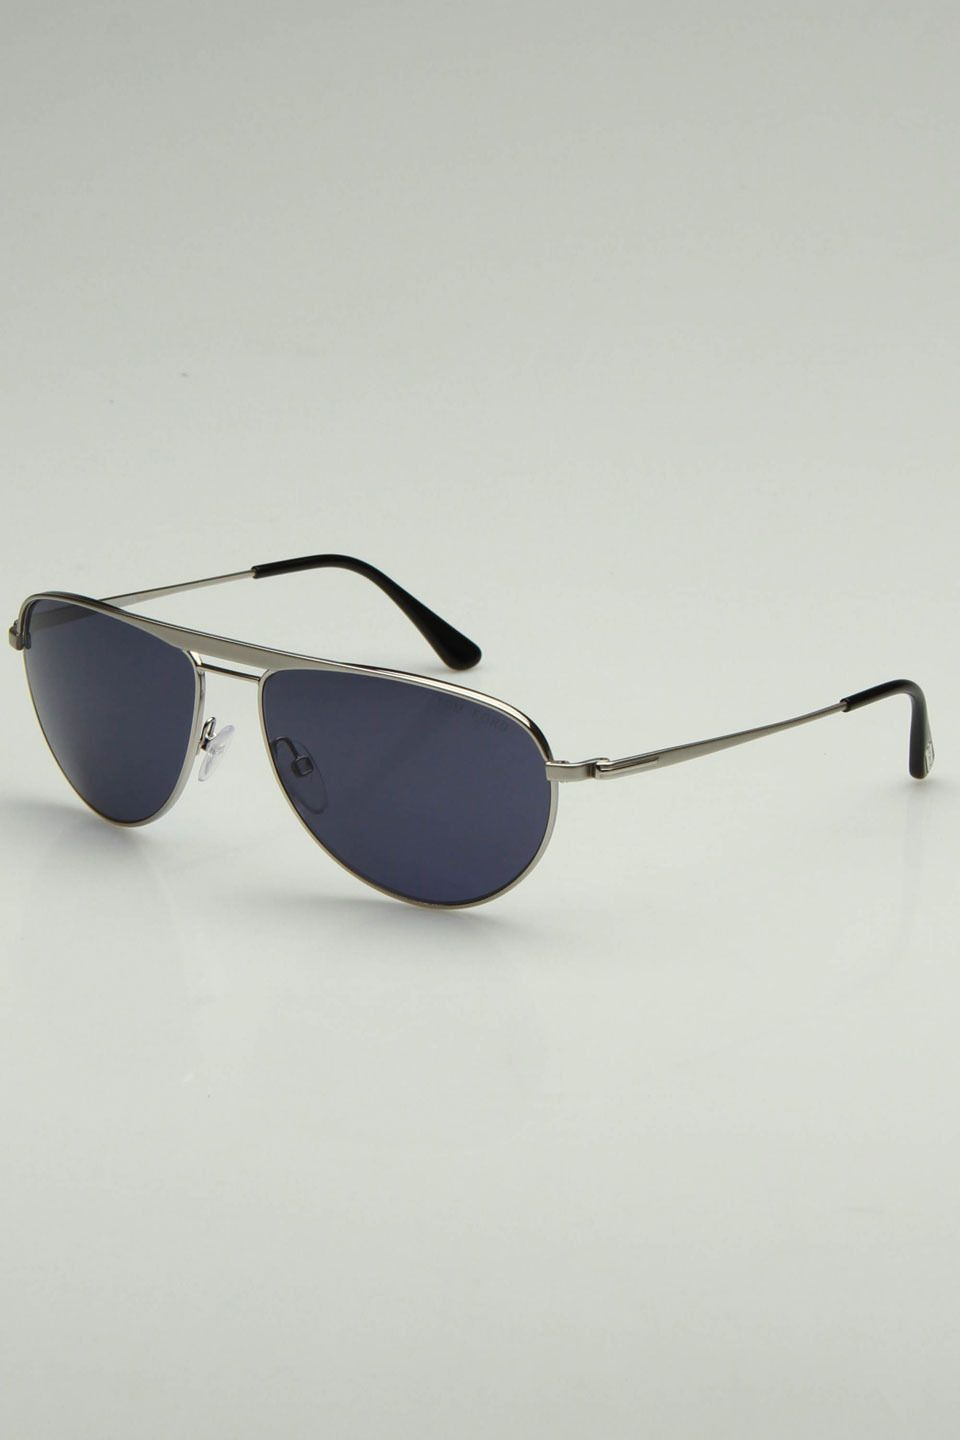 6d2c871beeafd Tom Ford William Sunglasses In Silver